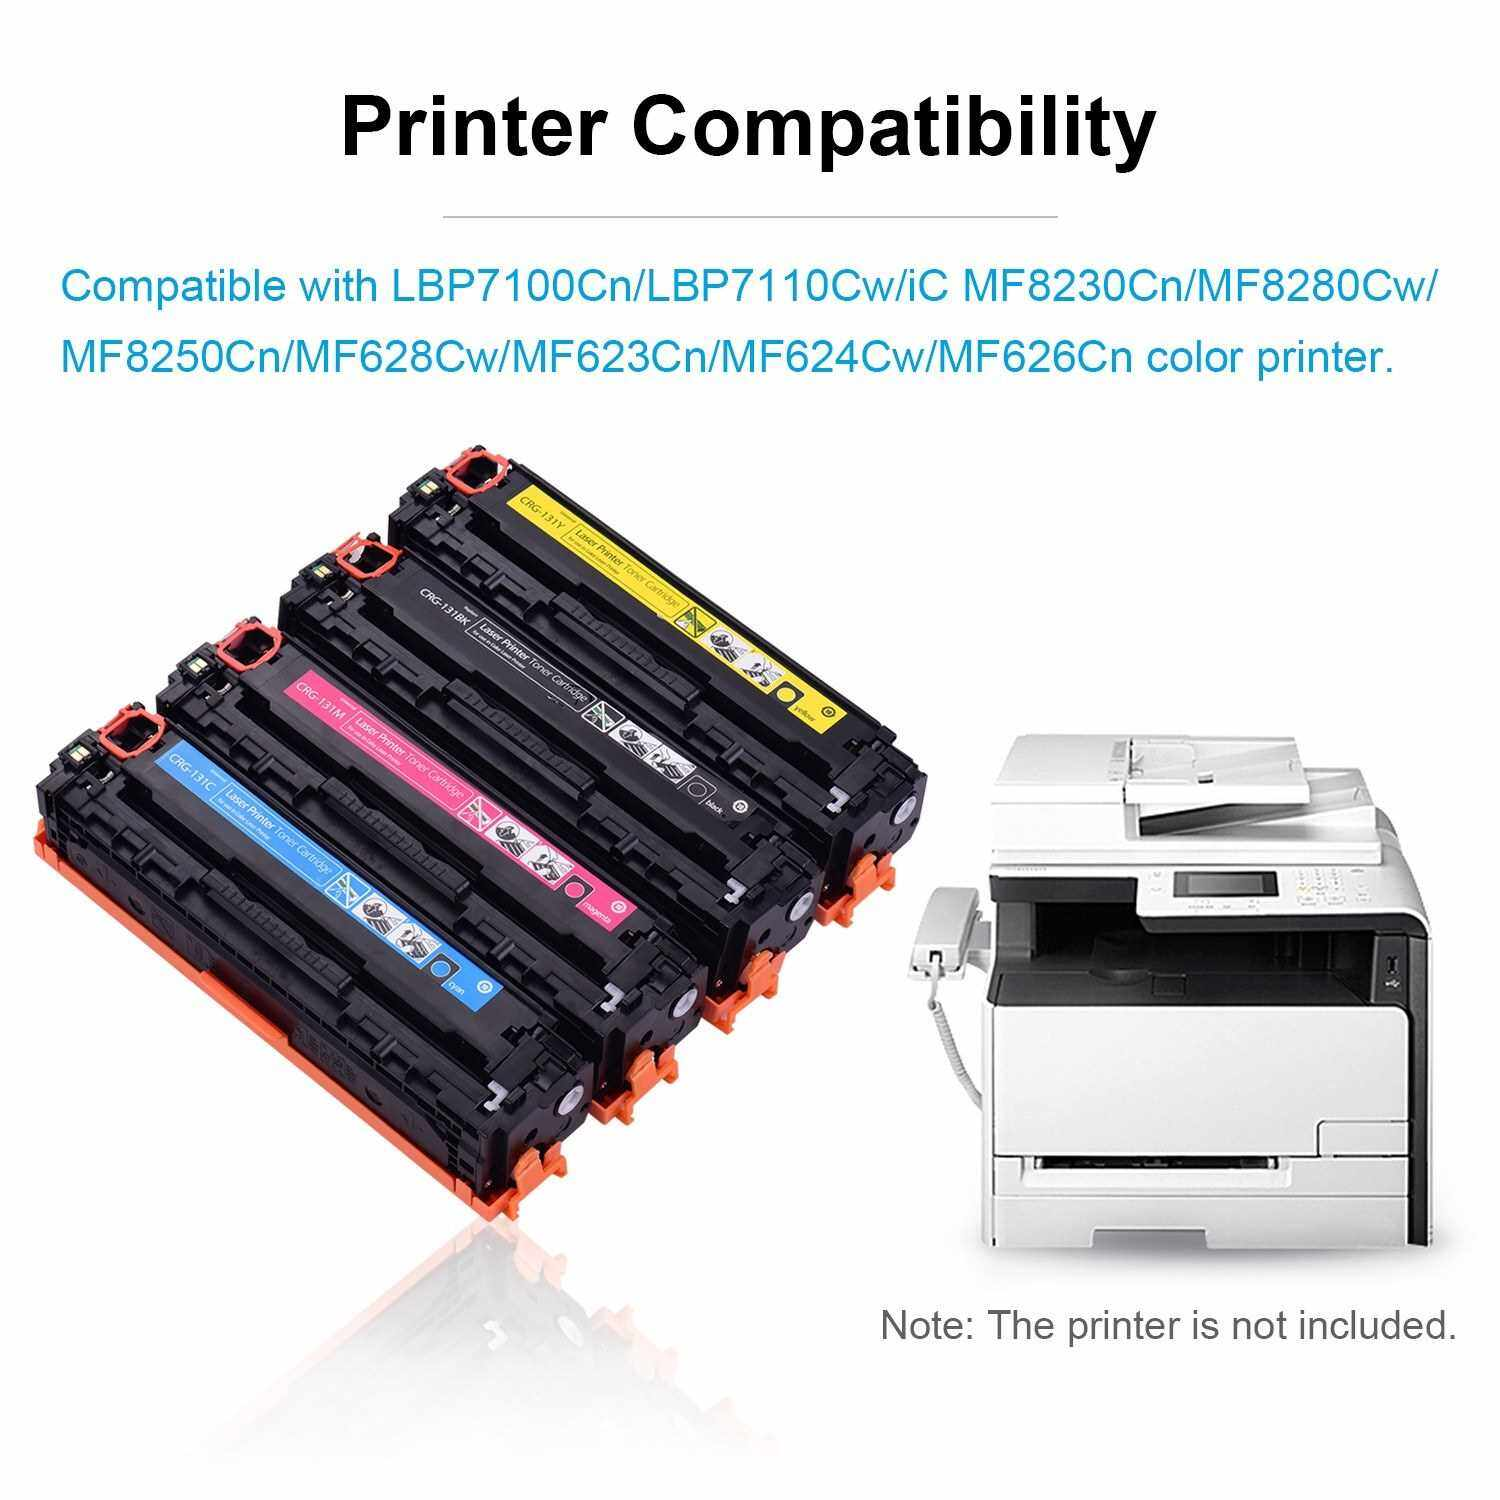 Aibecy Compatible Toner Cartridge Replacement for CRG-131 Toner with Chip Compatible with LBP7100Cn/LBP7110Cw/iC MF8230Cn/MF8280Cw/MF8250Cn/MF628Cw/MF623Cn/MF624Cw/MF626Cn Printer(Cyan,1 Pack) (Blue)